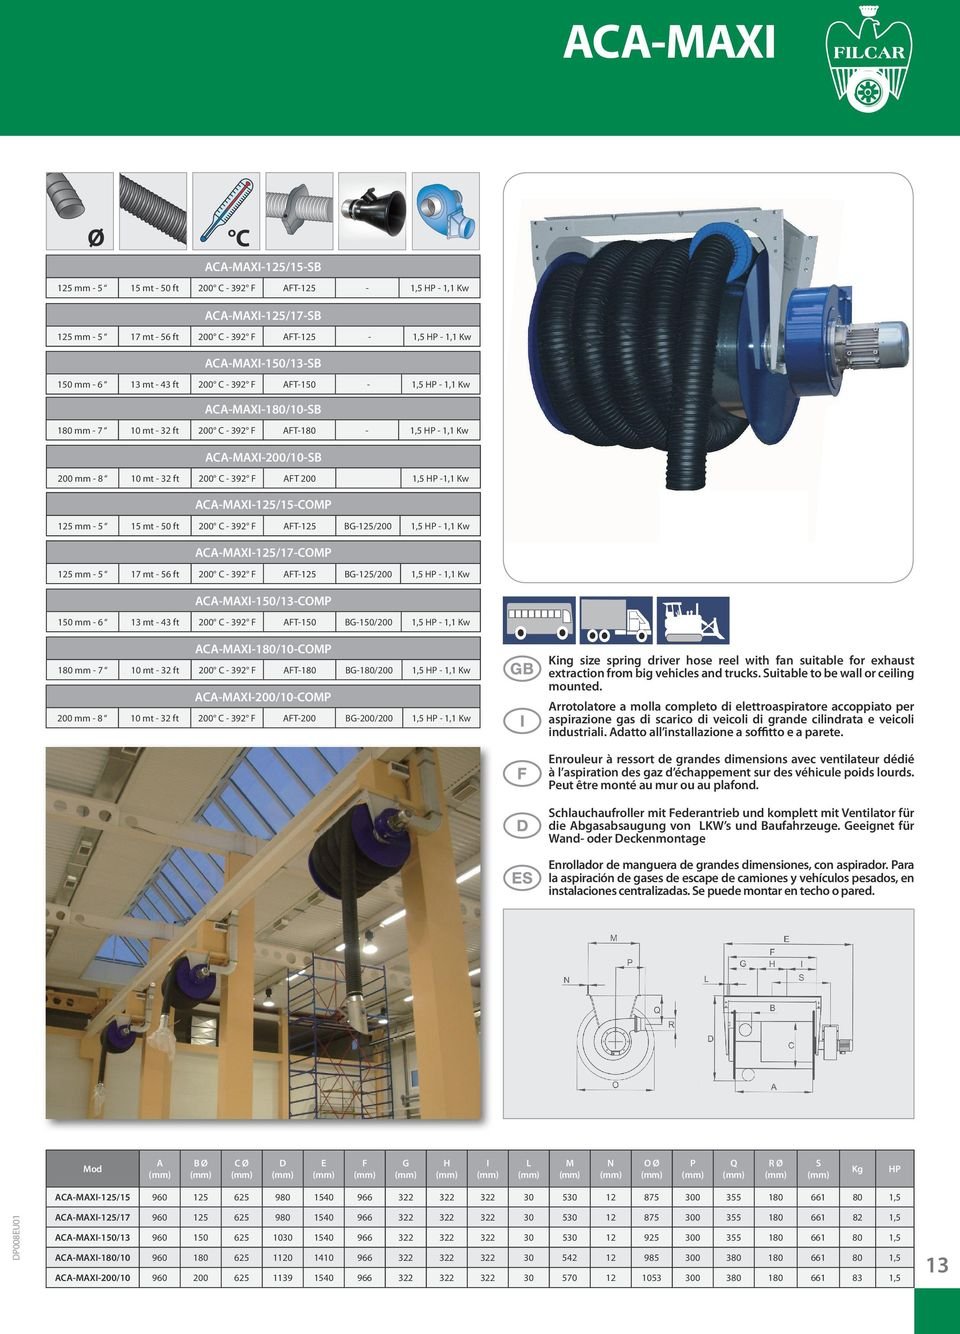 Kw King size spring driver hose reel with fan suitable for exhaust extraction from big vehicles and trucks. Suitable to be wall or ceiling mounted.